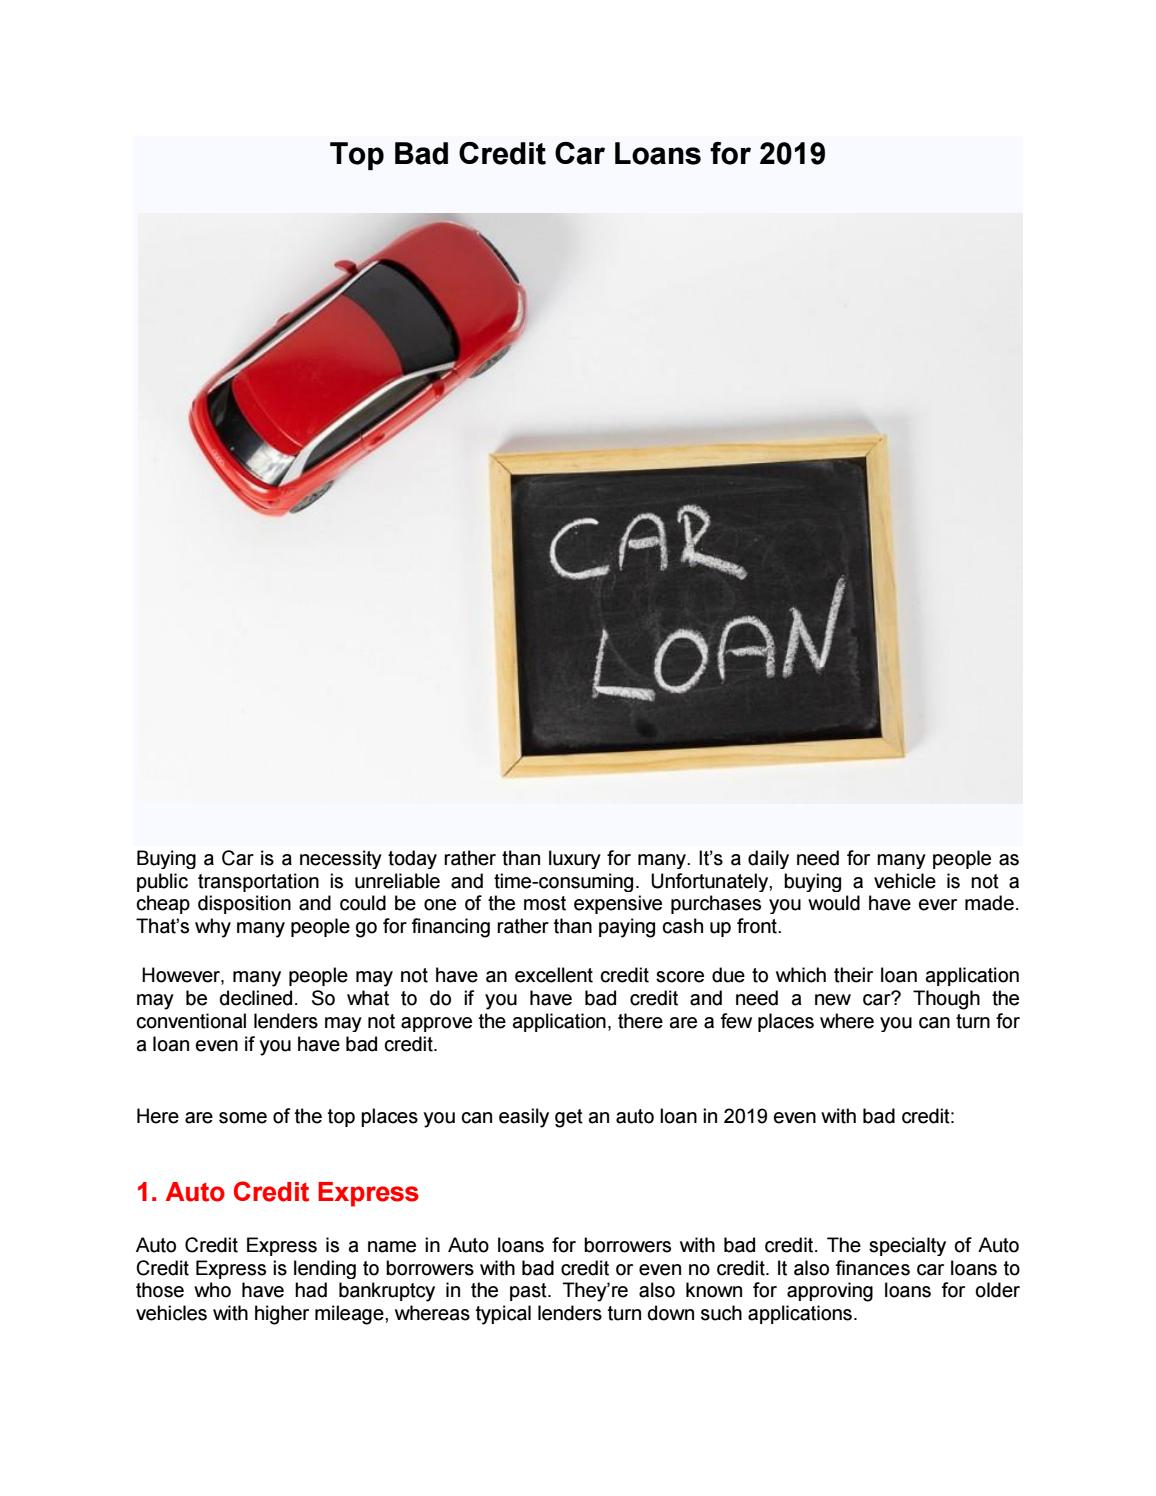 Auto Credit Express >> Top Bad Credit Car Loans For 2019 By Ownacarfresno Issuu